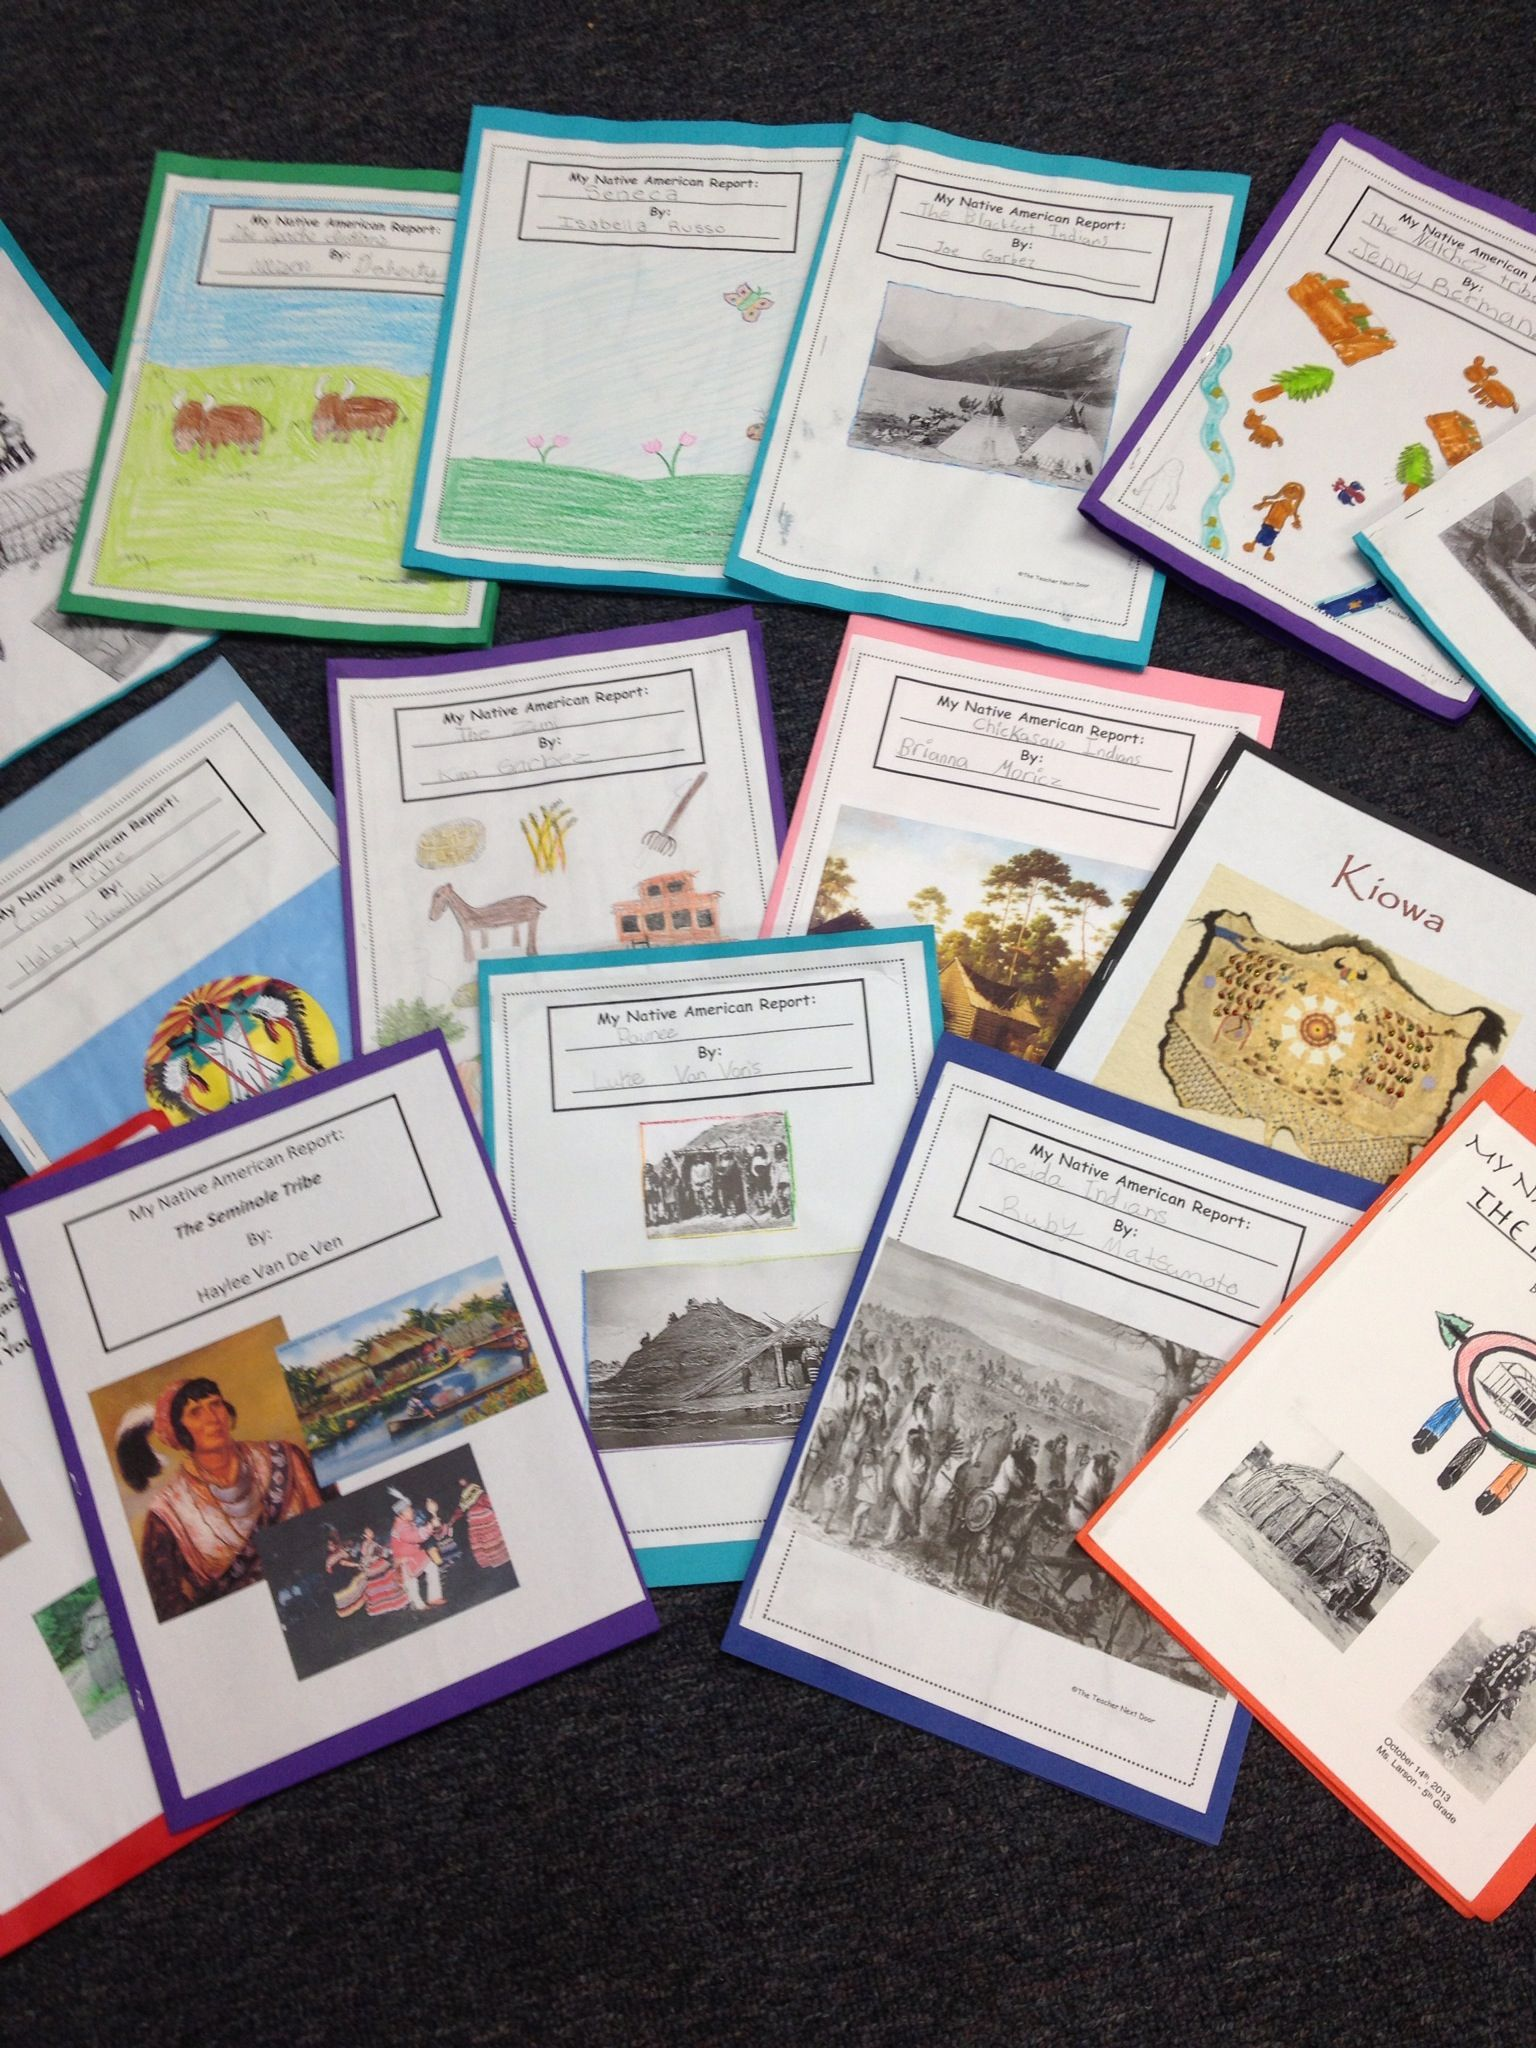 Native American Report For 3rd 6th Grade Third Pinterest Wiring Background Powerpoint Template Poweredtemplatecom 3 Here Are Some Of The Finished Research Reports By Teacher Next Doors Class